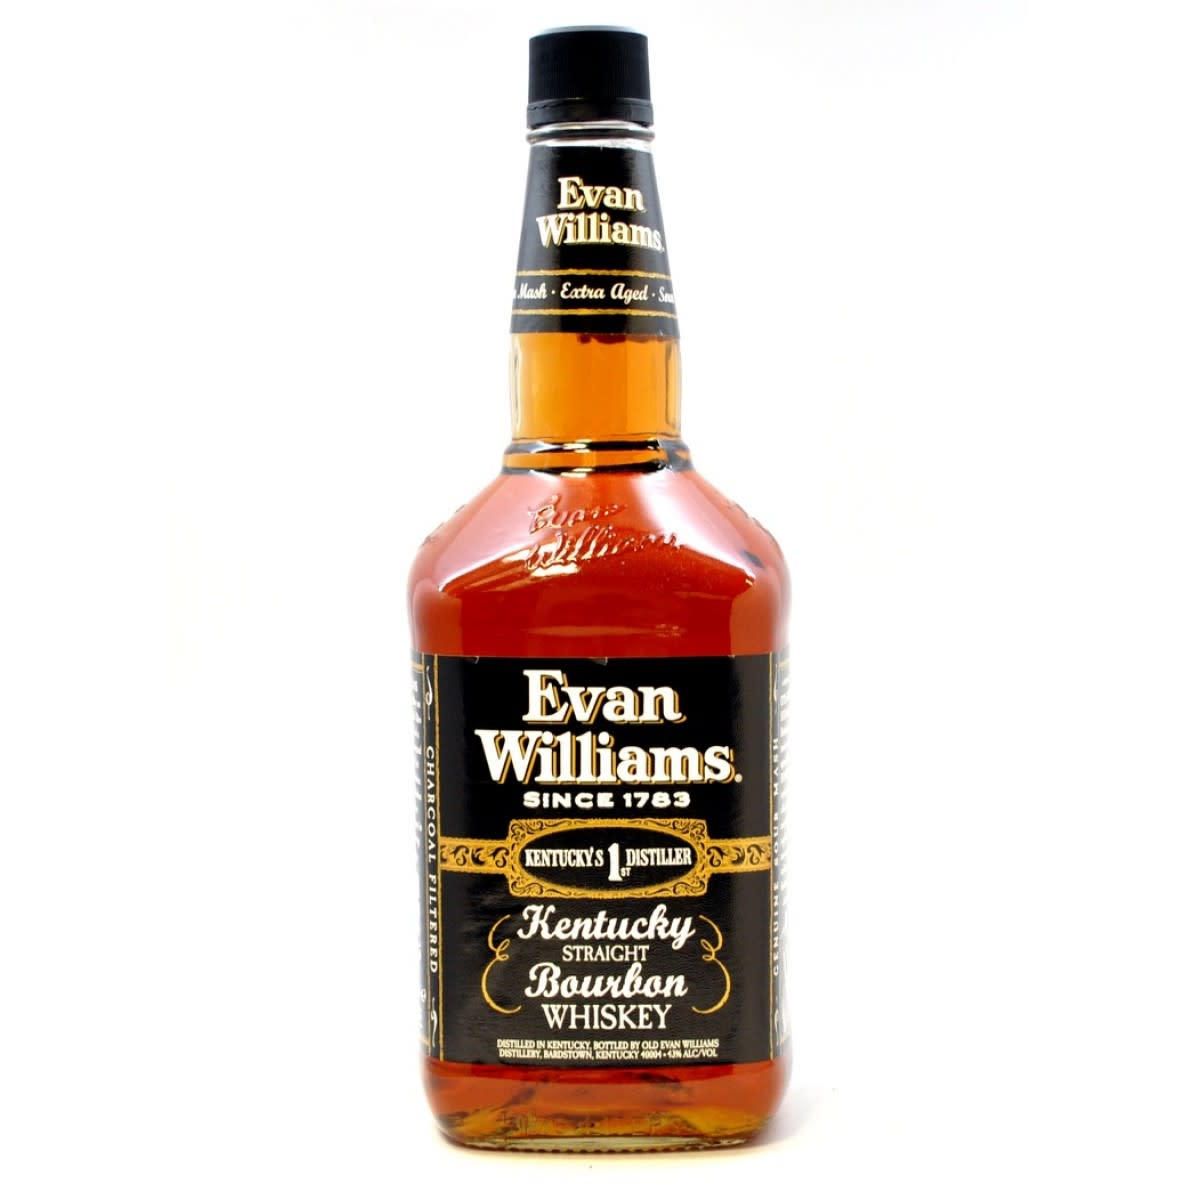 Evan Williams Black Label is highly drinkable for its price.